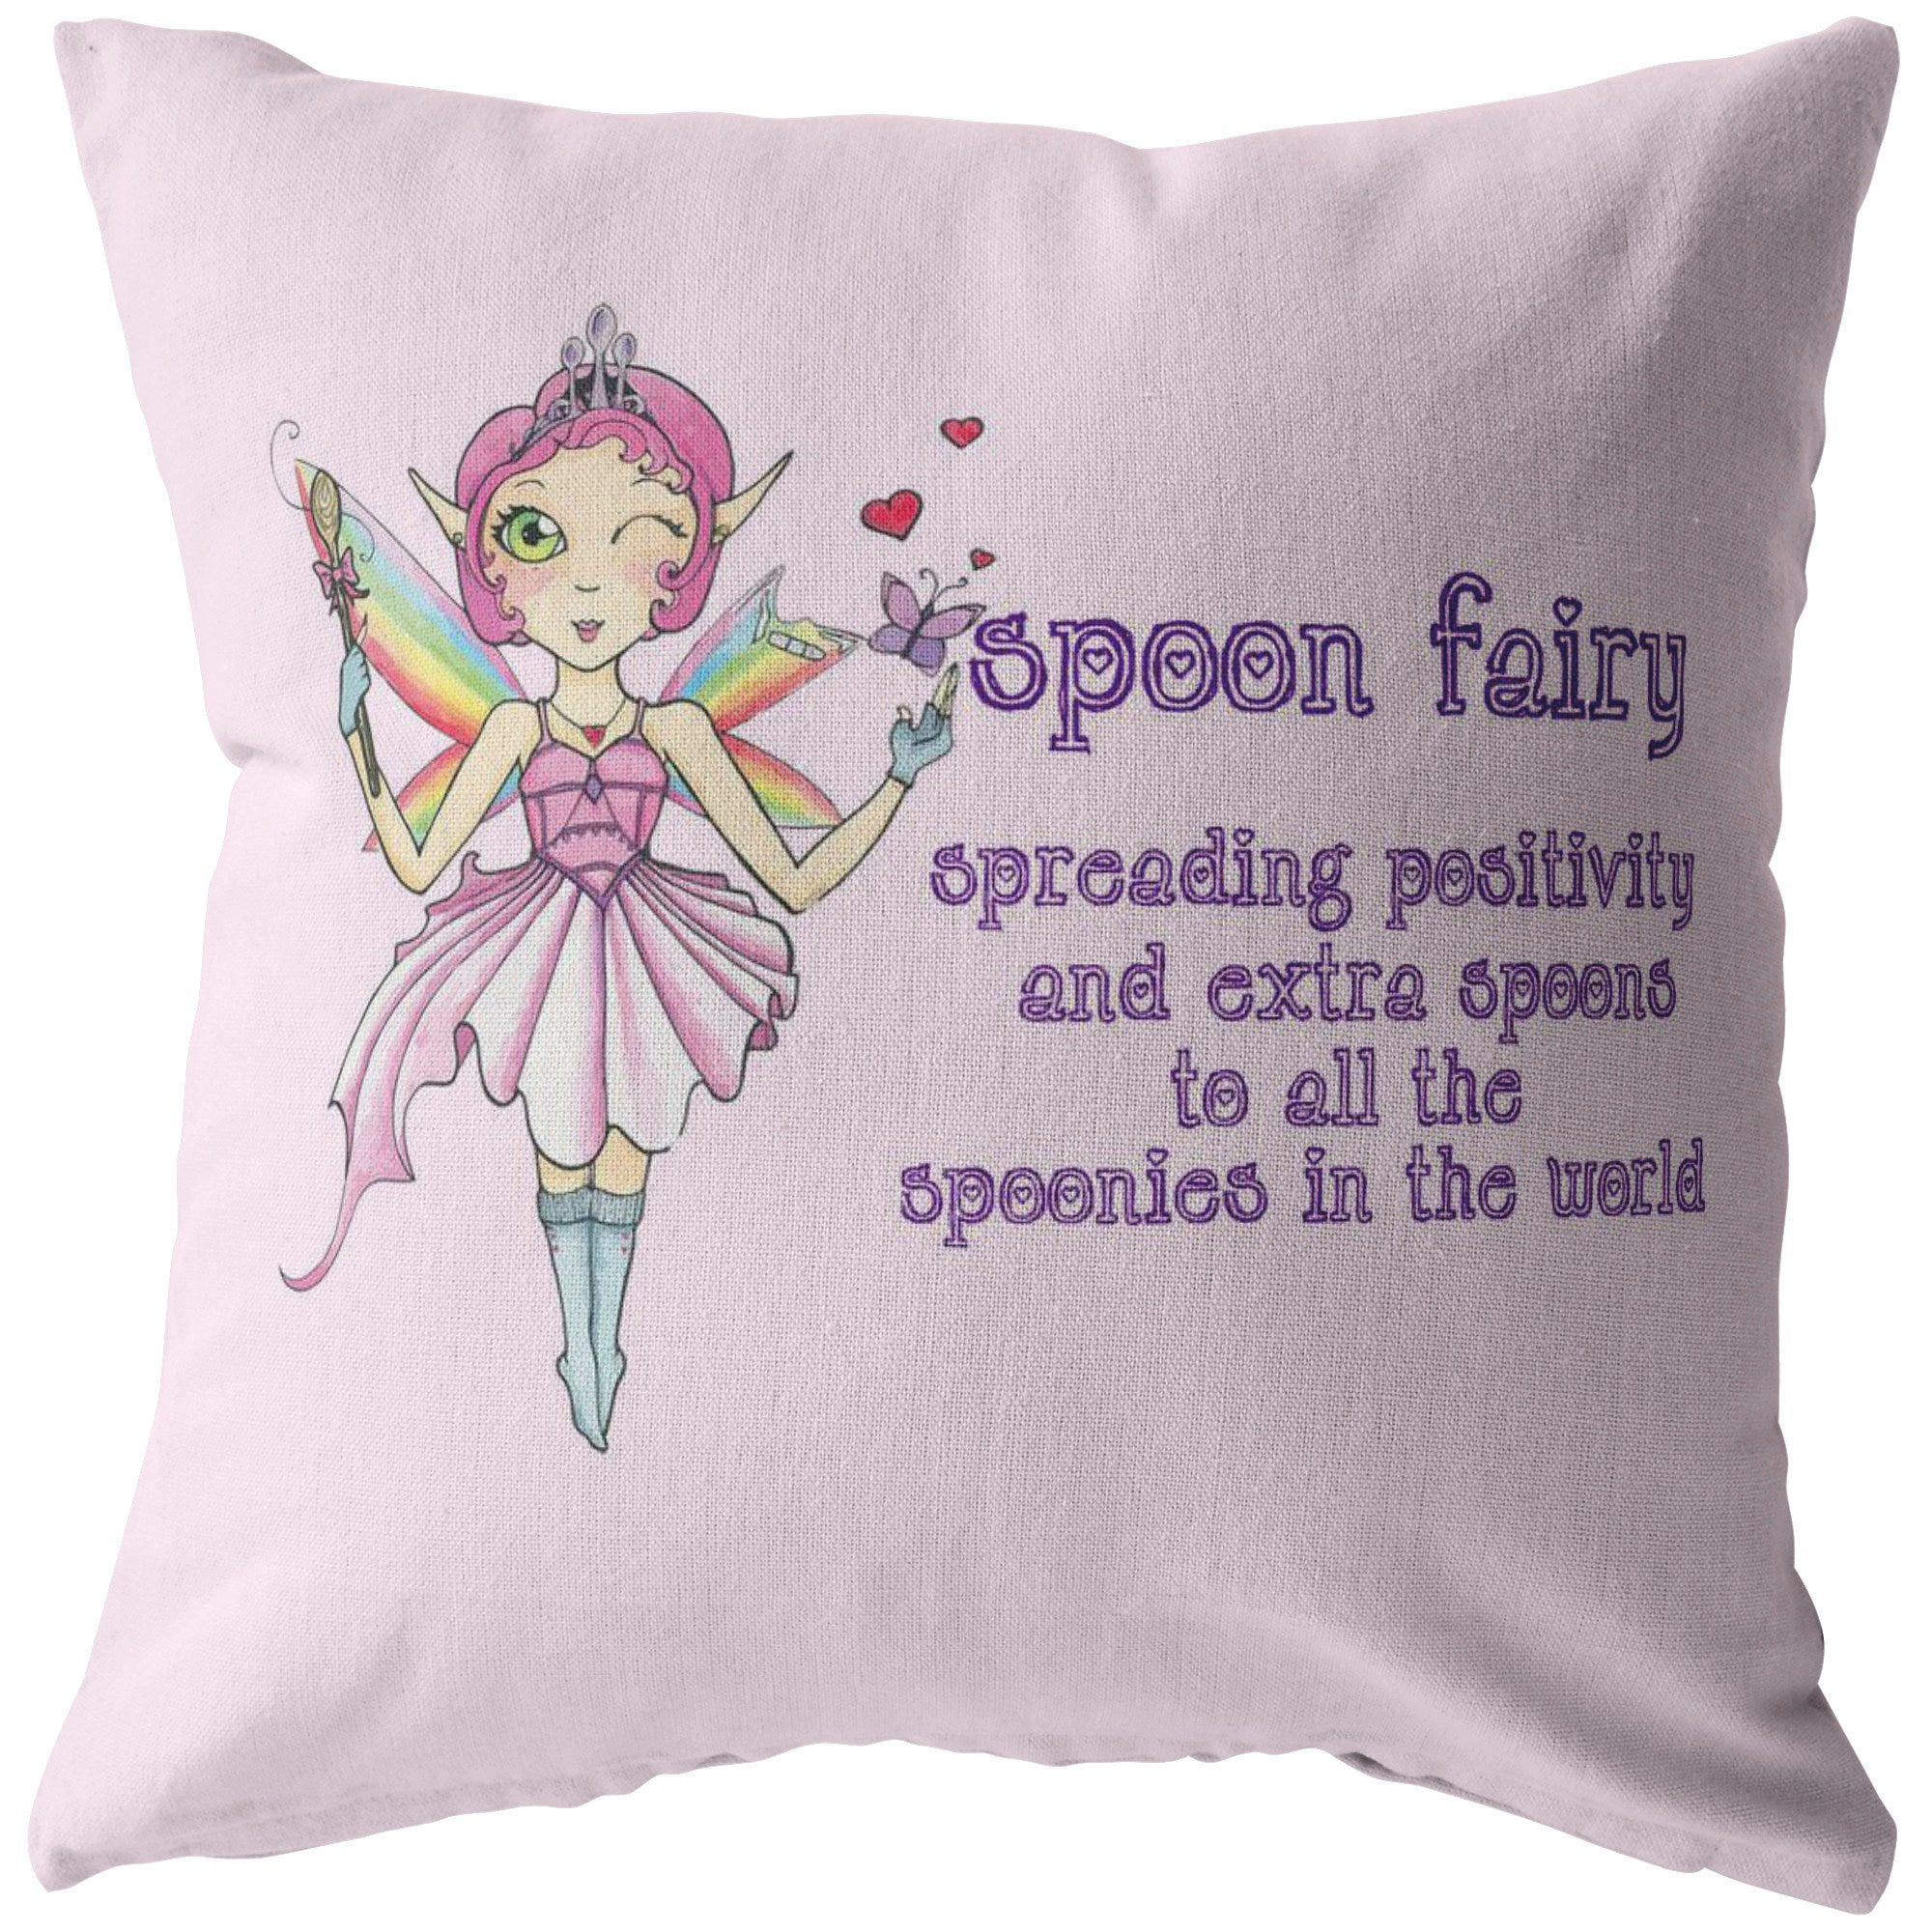 Spoon Fairy With Text Pillow - The Unchargeables